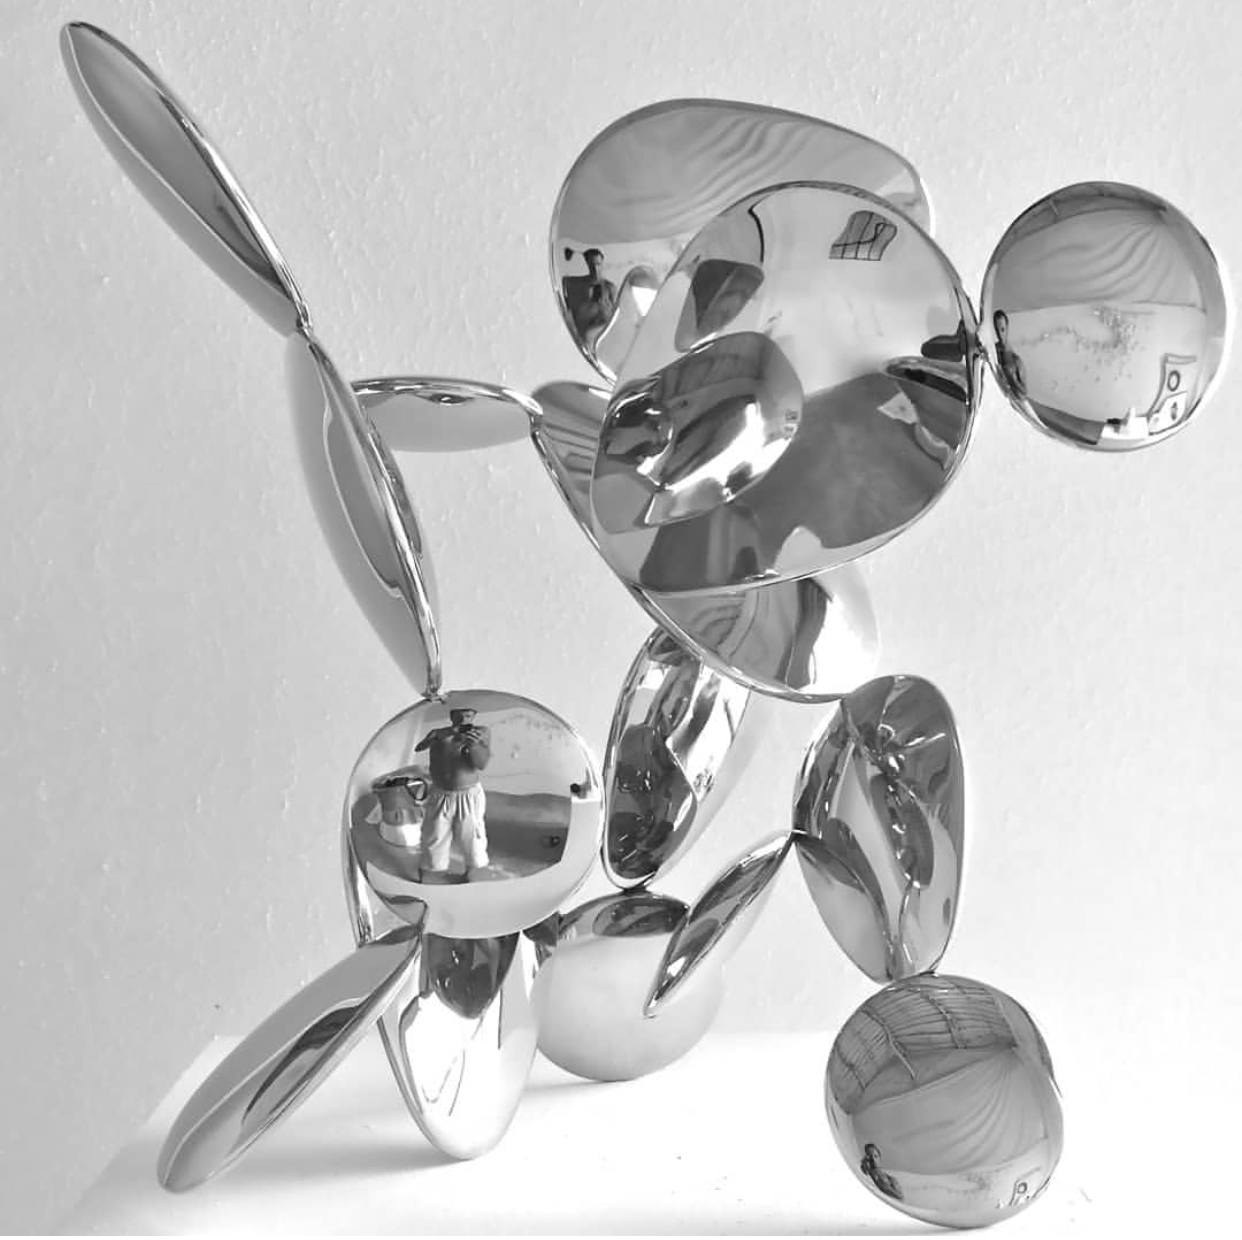 Home Decoration abstract metal animal design Stainless Steel Sculpture